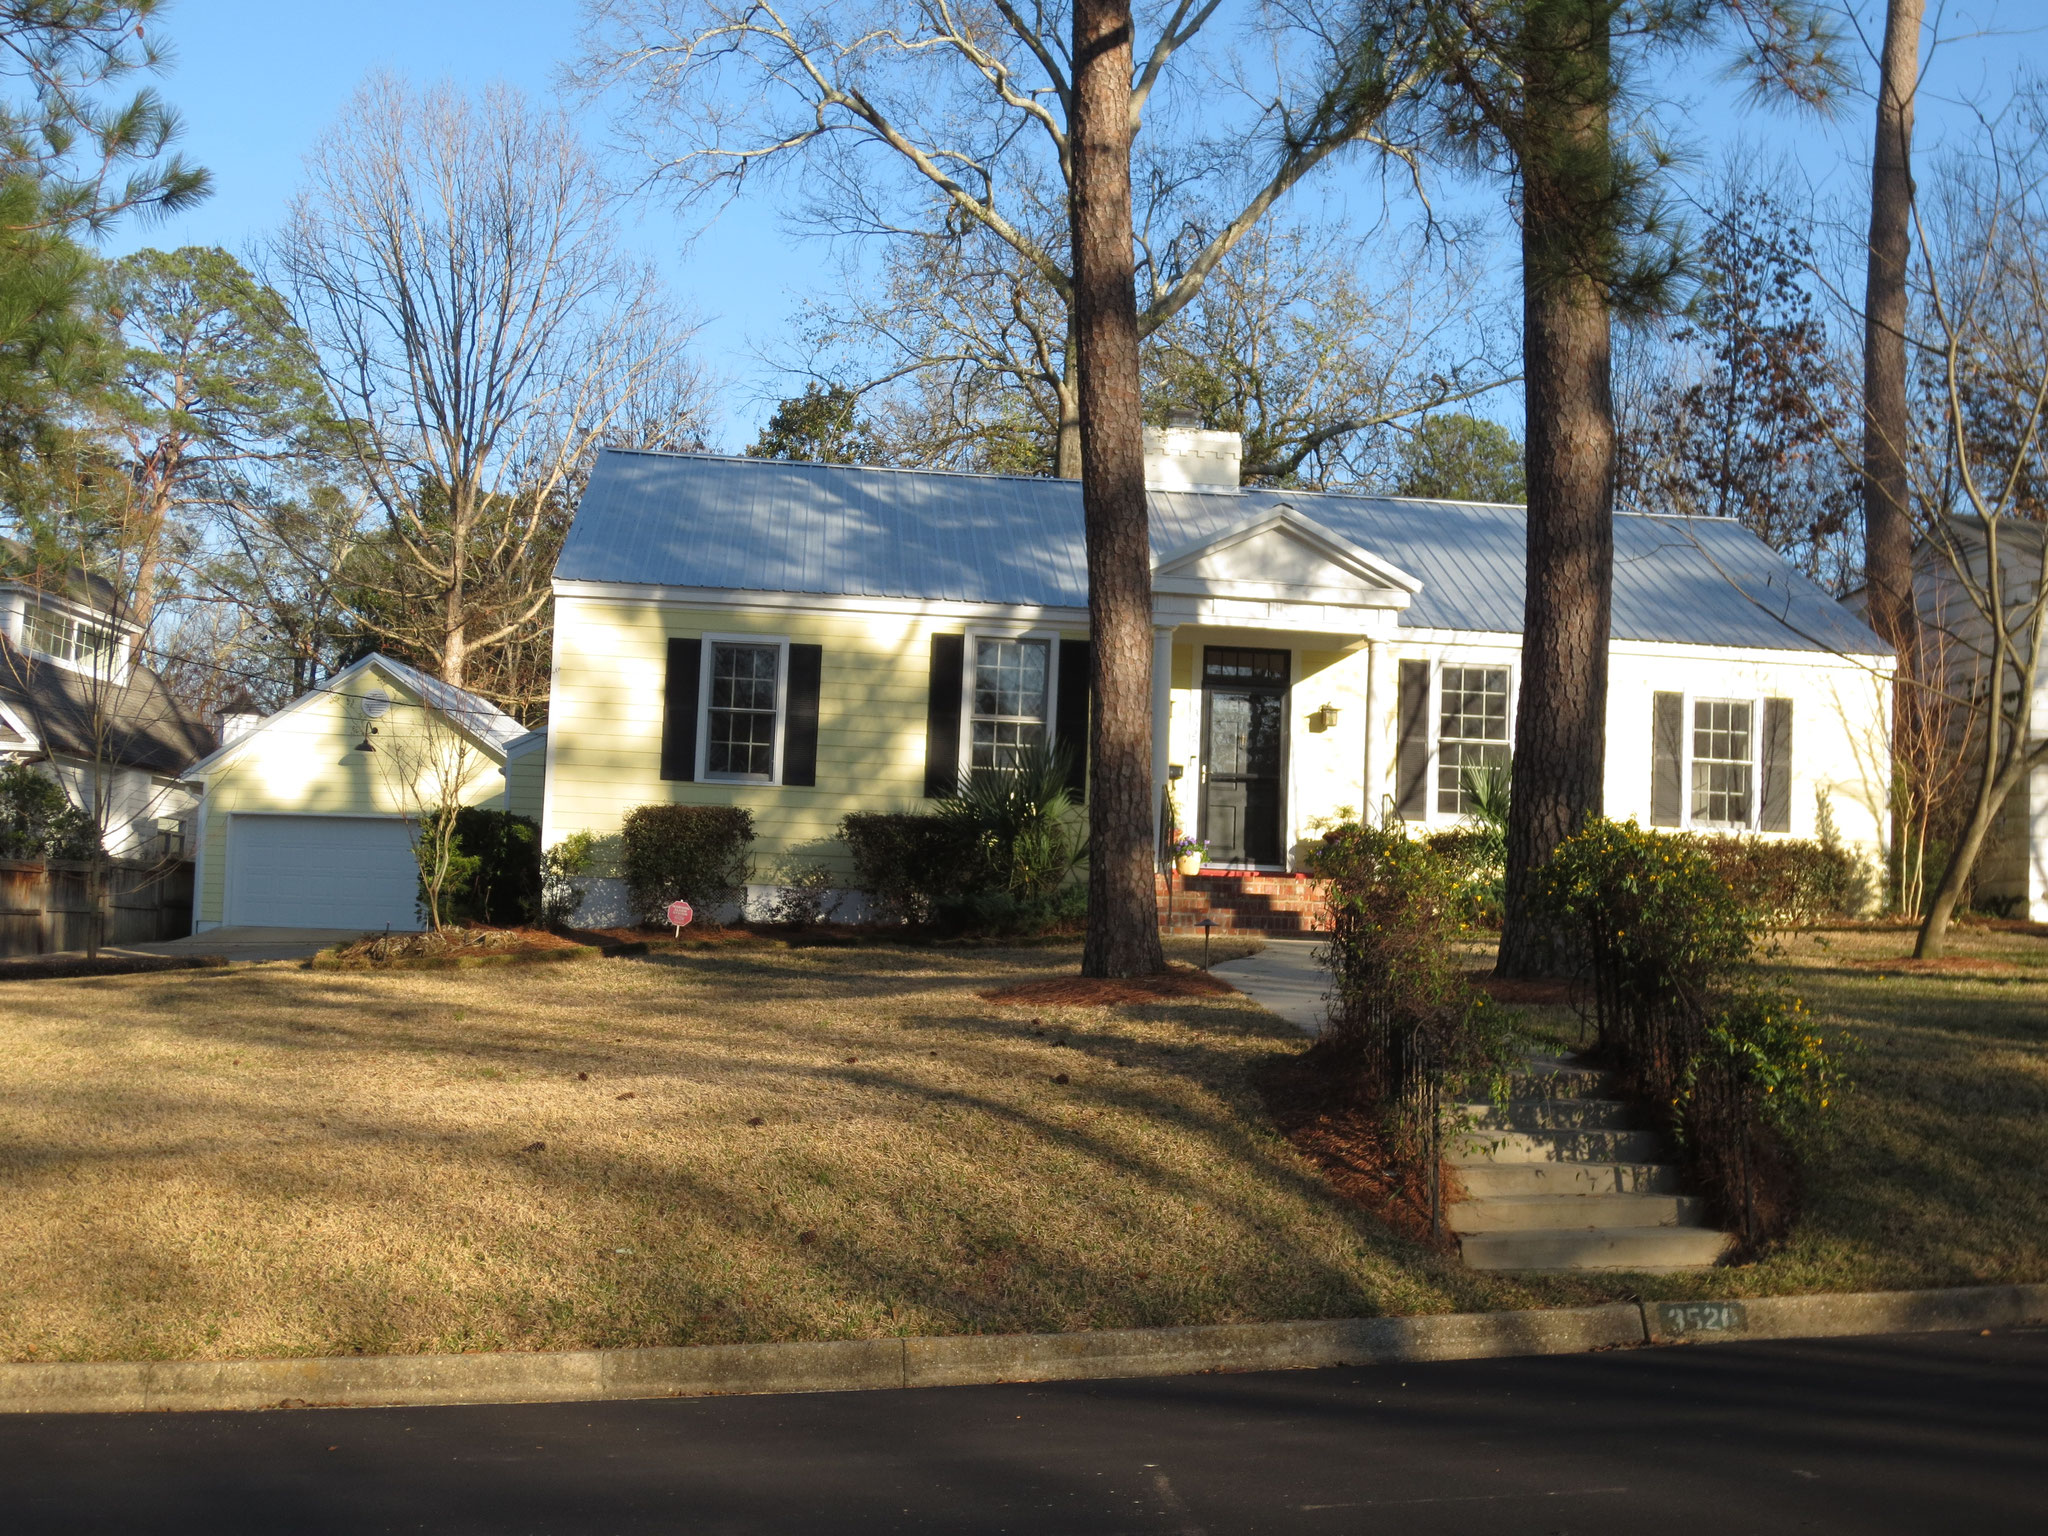 Prime Fondren location, immaculate 3/3 updated, too!  3520 Kings Hwy, Jackson